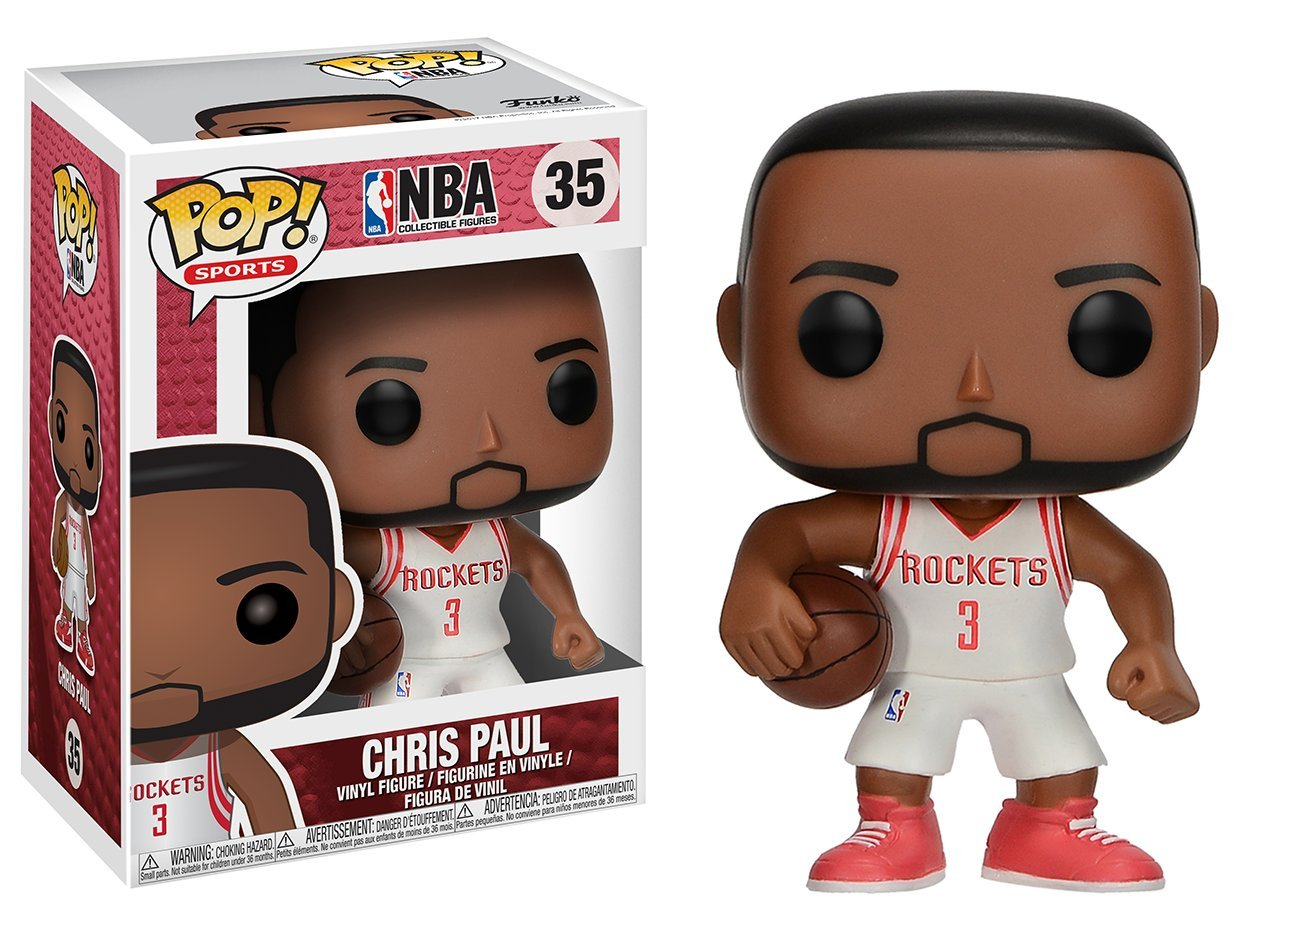 Funko Pop Chris Paul Houston Rockets (NBA 35) Funko Pop NBA